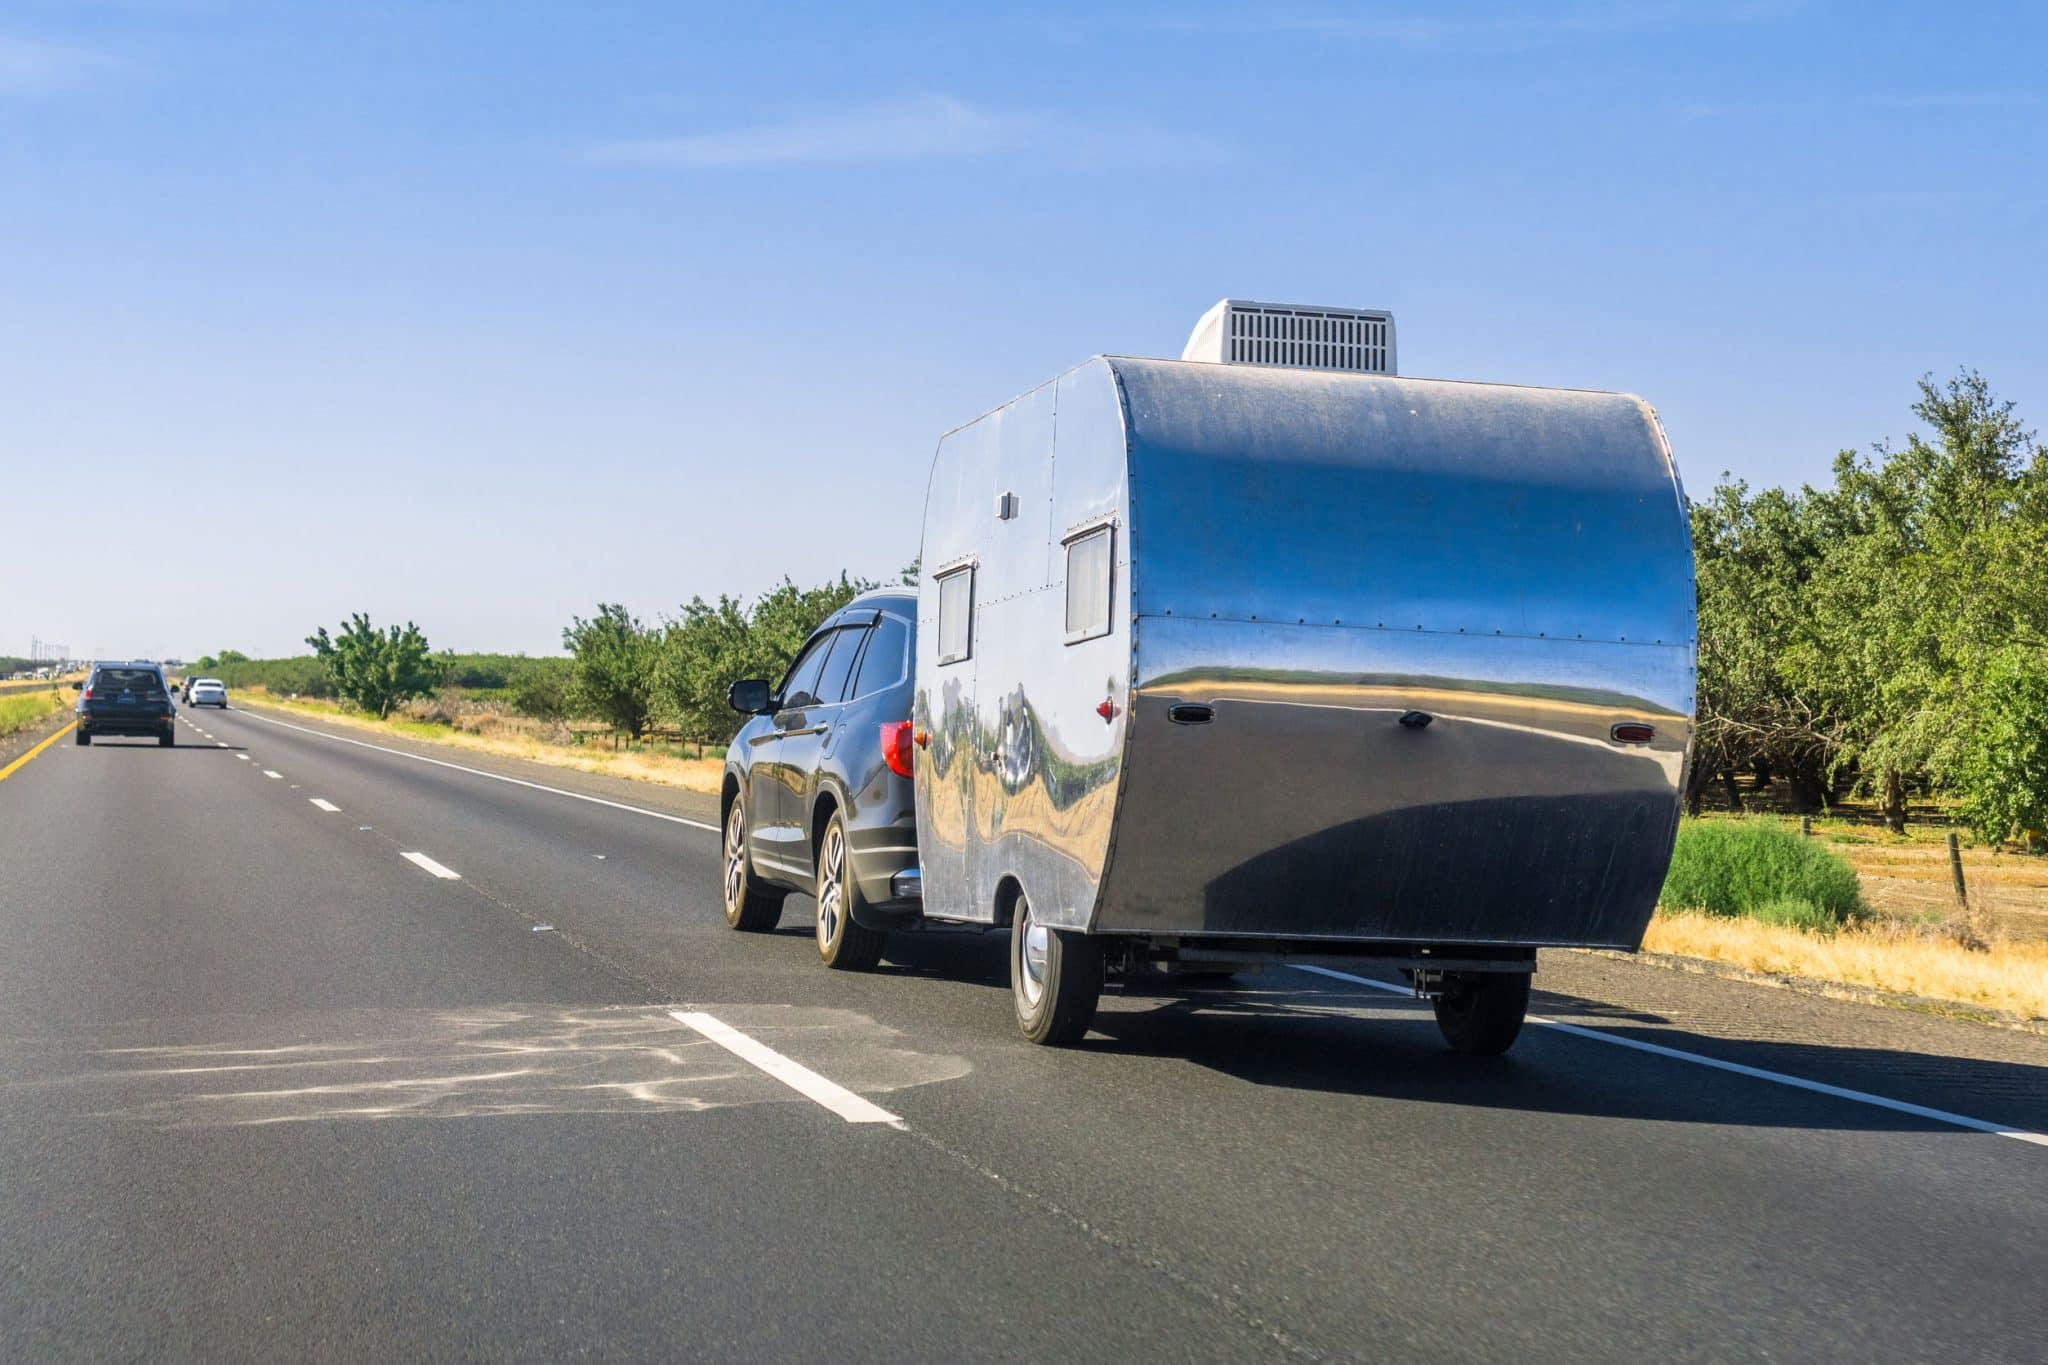 Car towing a trailer on the interstate, Michigan